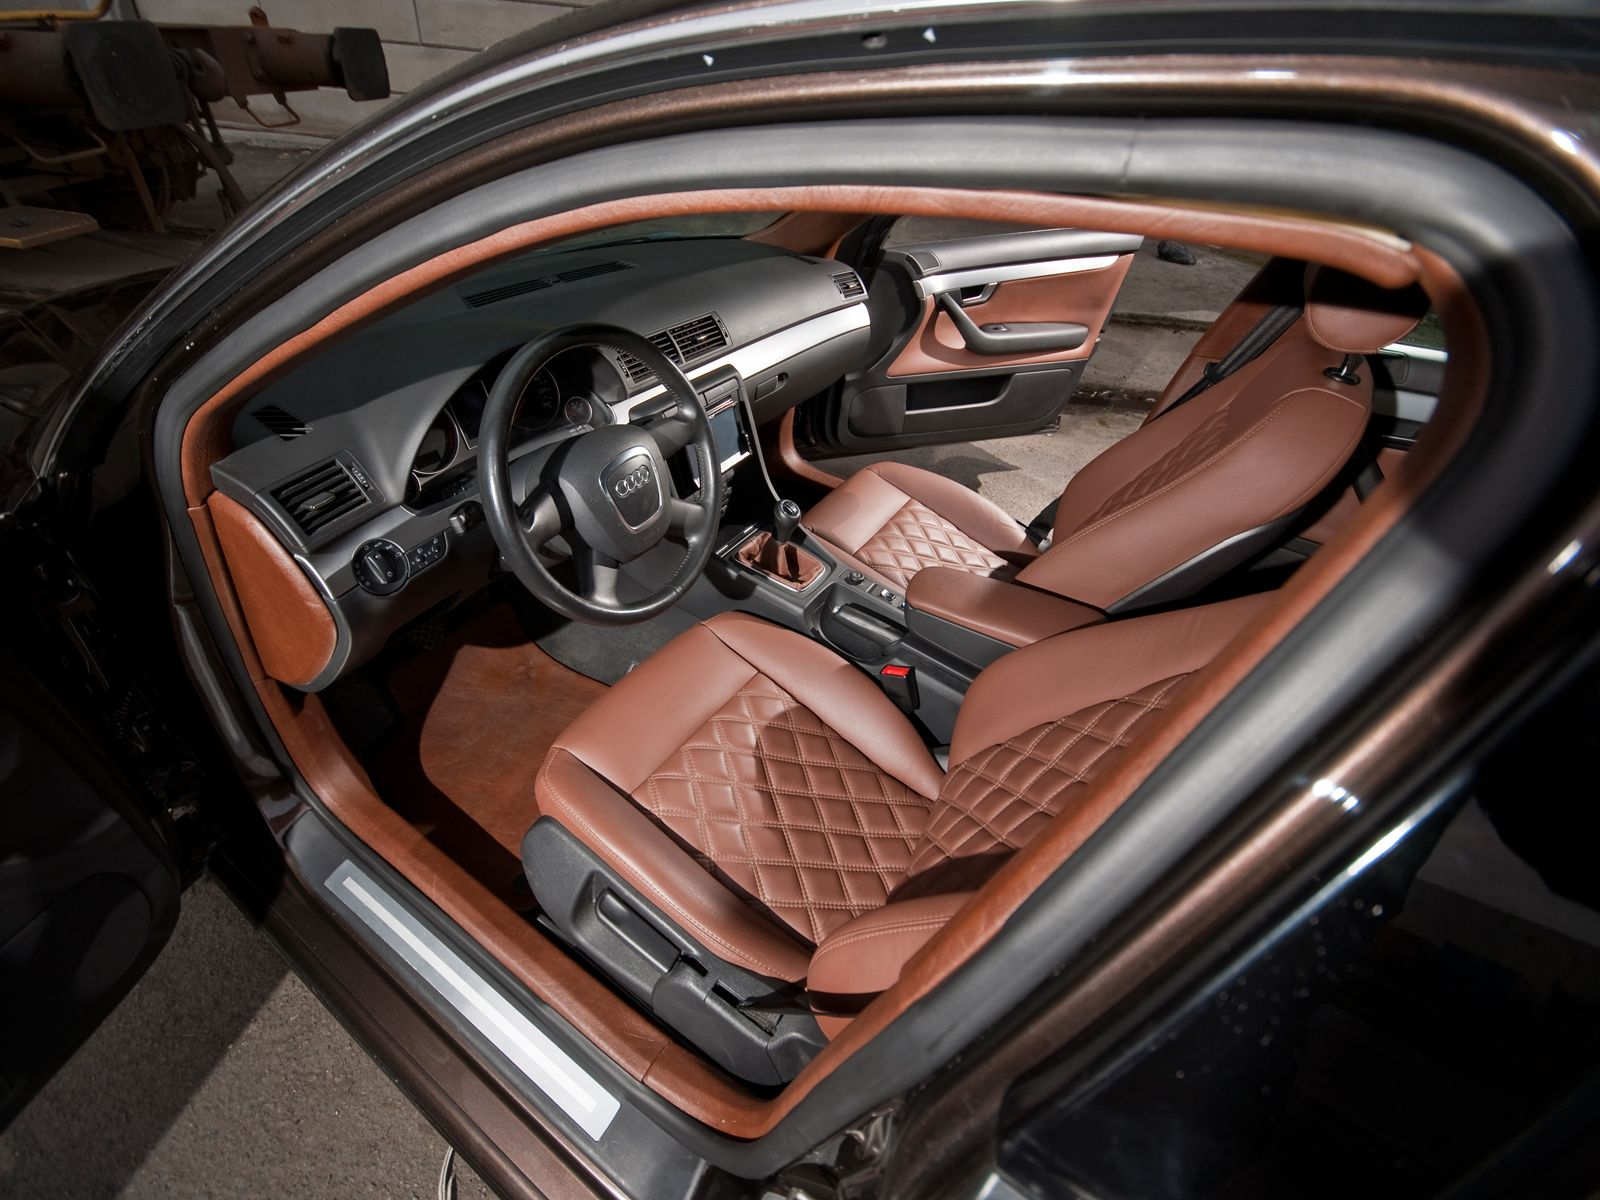 quilted leather seats google search auto interiors pinterest audi and audi a4. Black Bedroom Furniture Sets. Home Design Ideas